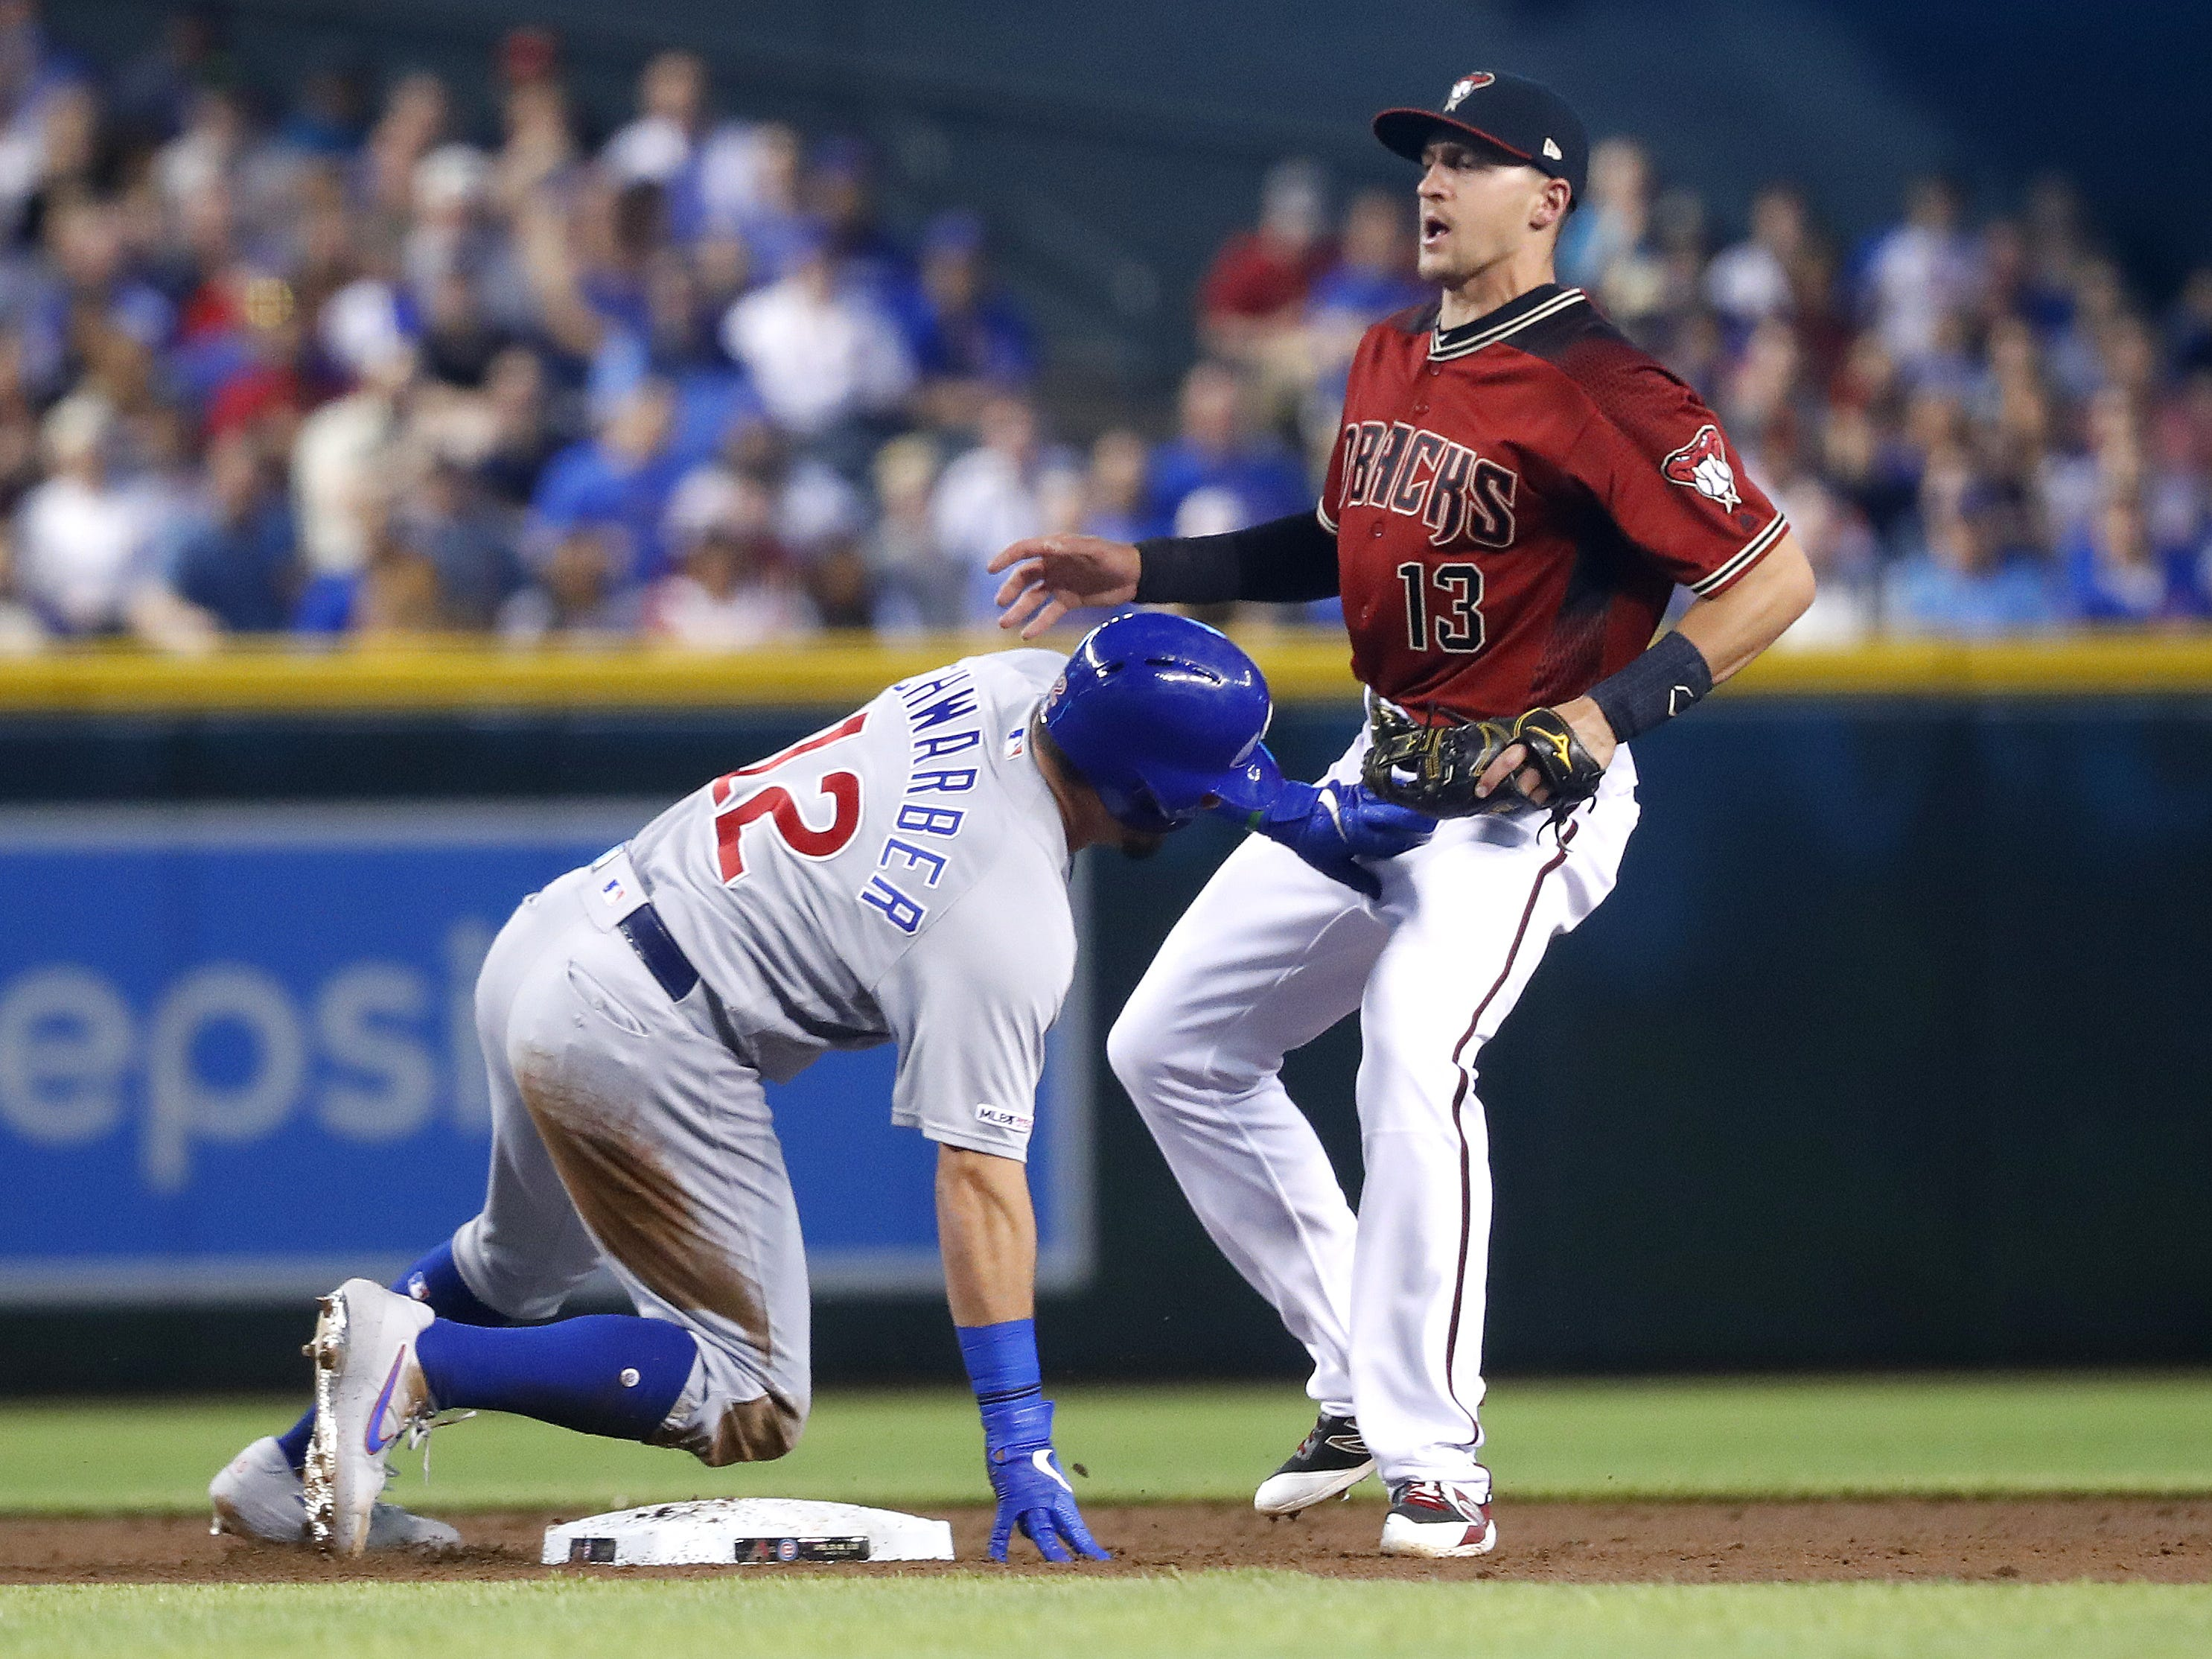 Diamondbacks' Nick Ahmed backs off Cubs' Kyle Schwarber (12) after recording an out at second base during the second inning at Chase Field in Phoenix, Ariz. on April 28, 2019.